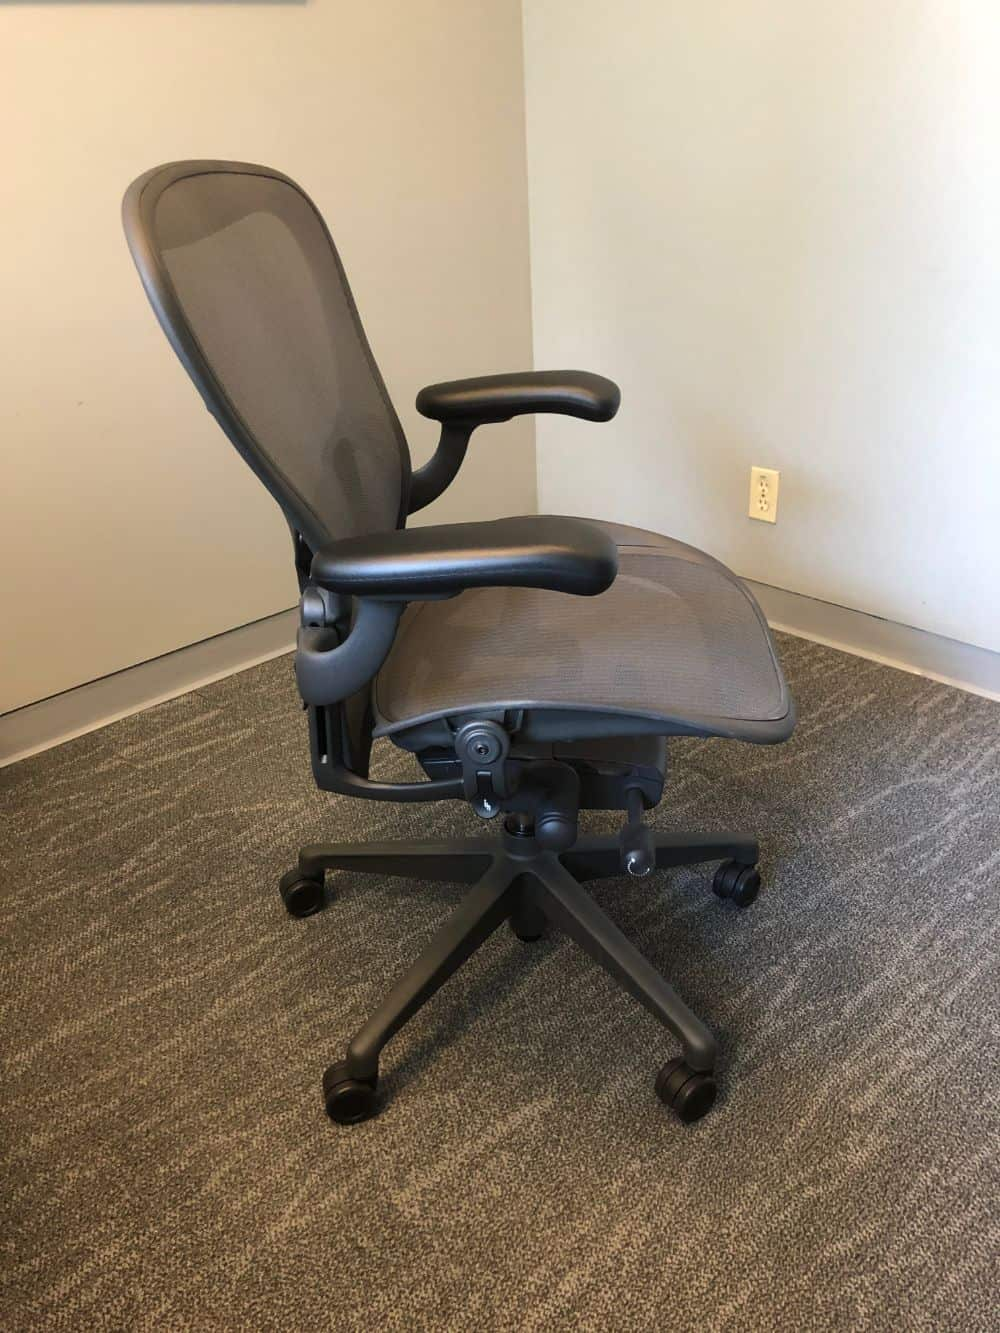 Side photo of aeron office chair